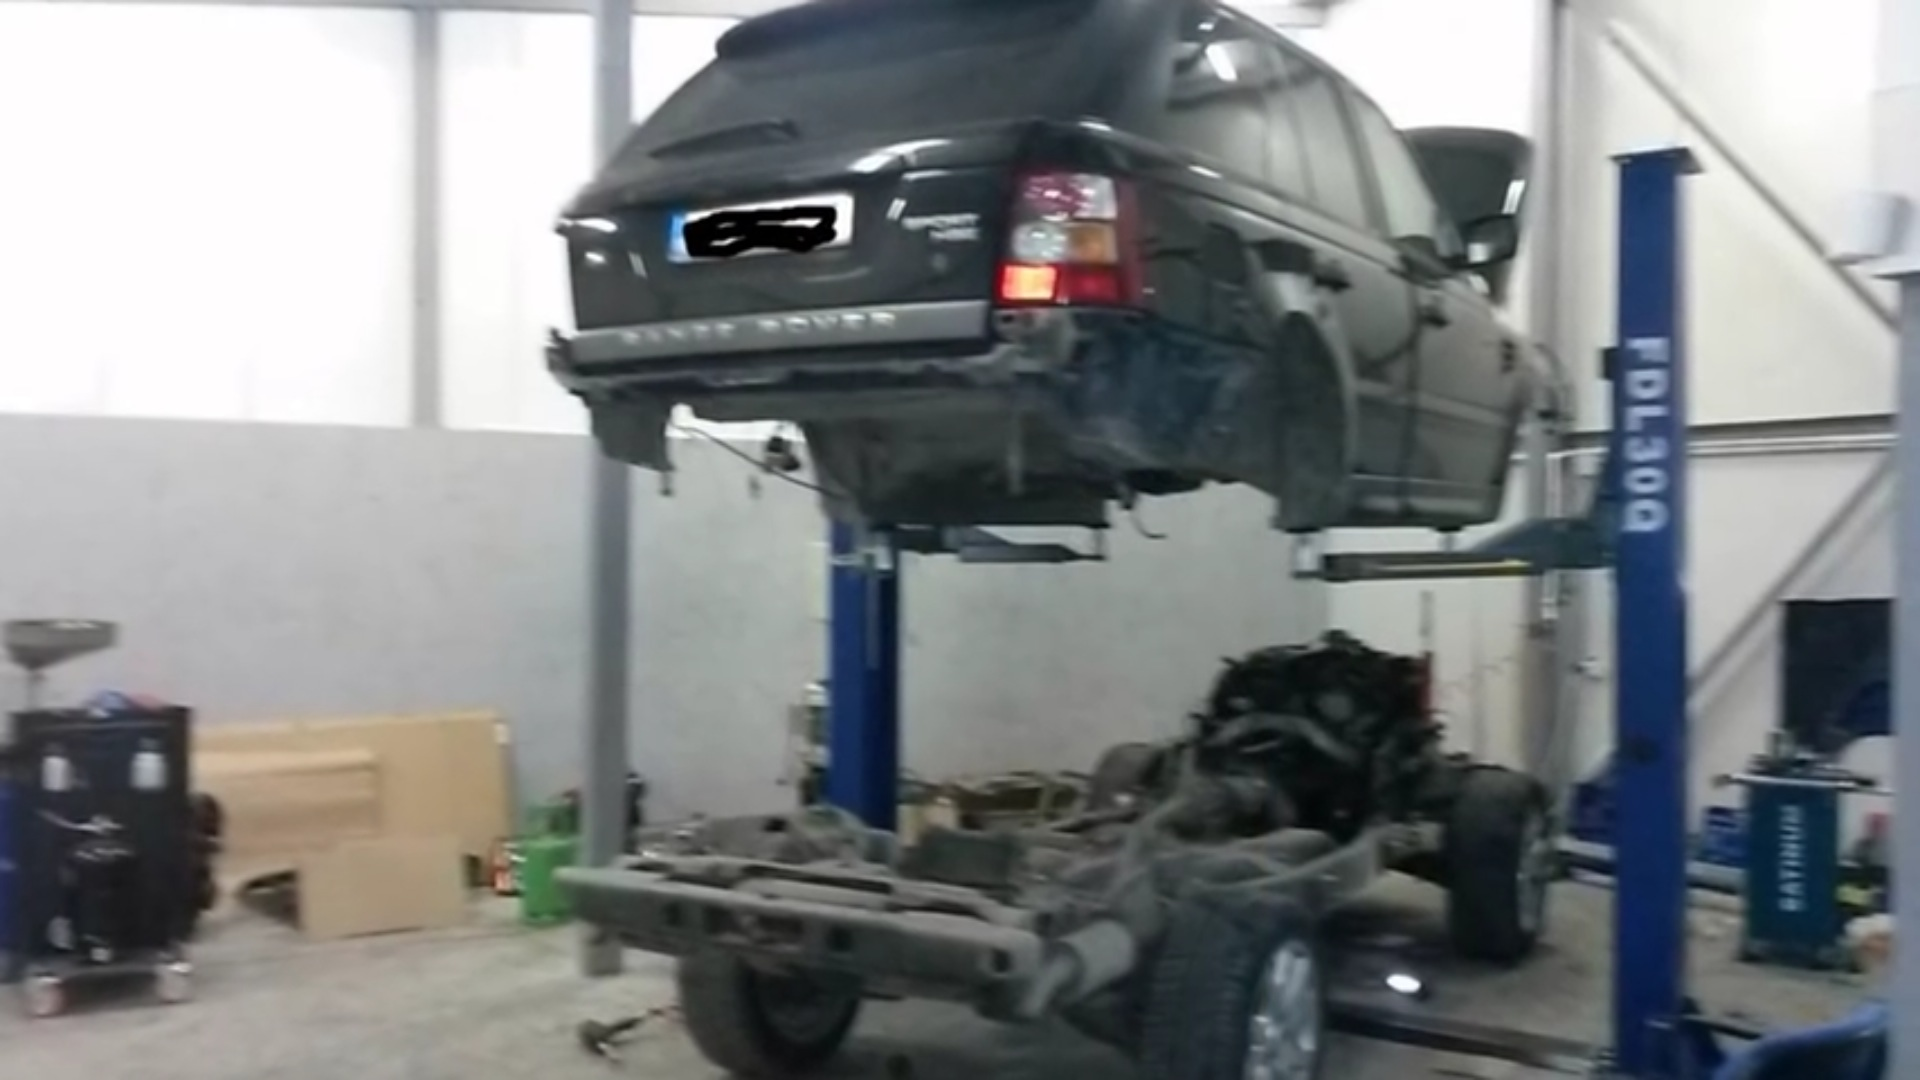 range rover sport split in half by mechanics just to repair the